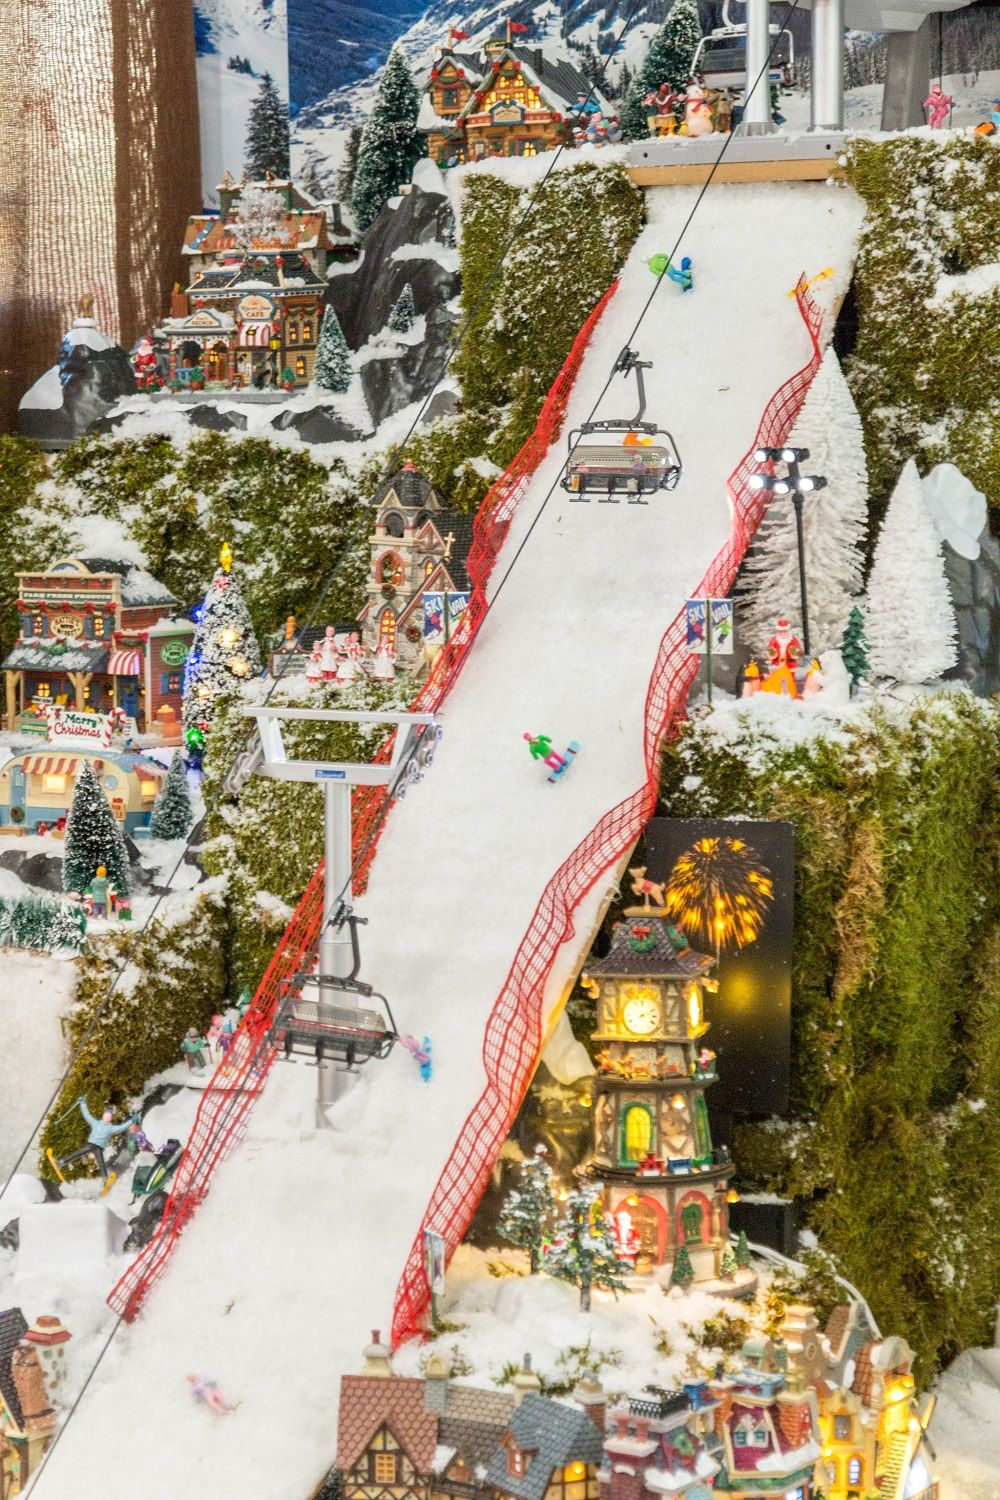 Make Your Own Ski Slope For The Christmas Lemax Village This Year It S Amazing Christmas Village Display Christmas Village Houses Christmas Village Sets